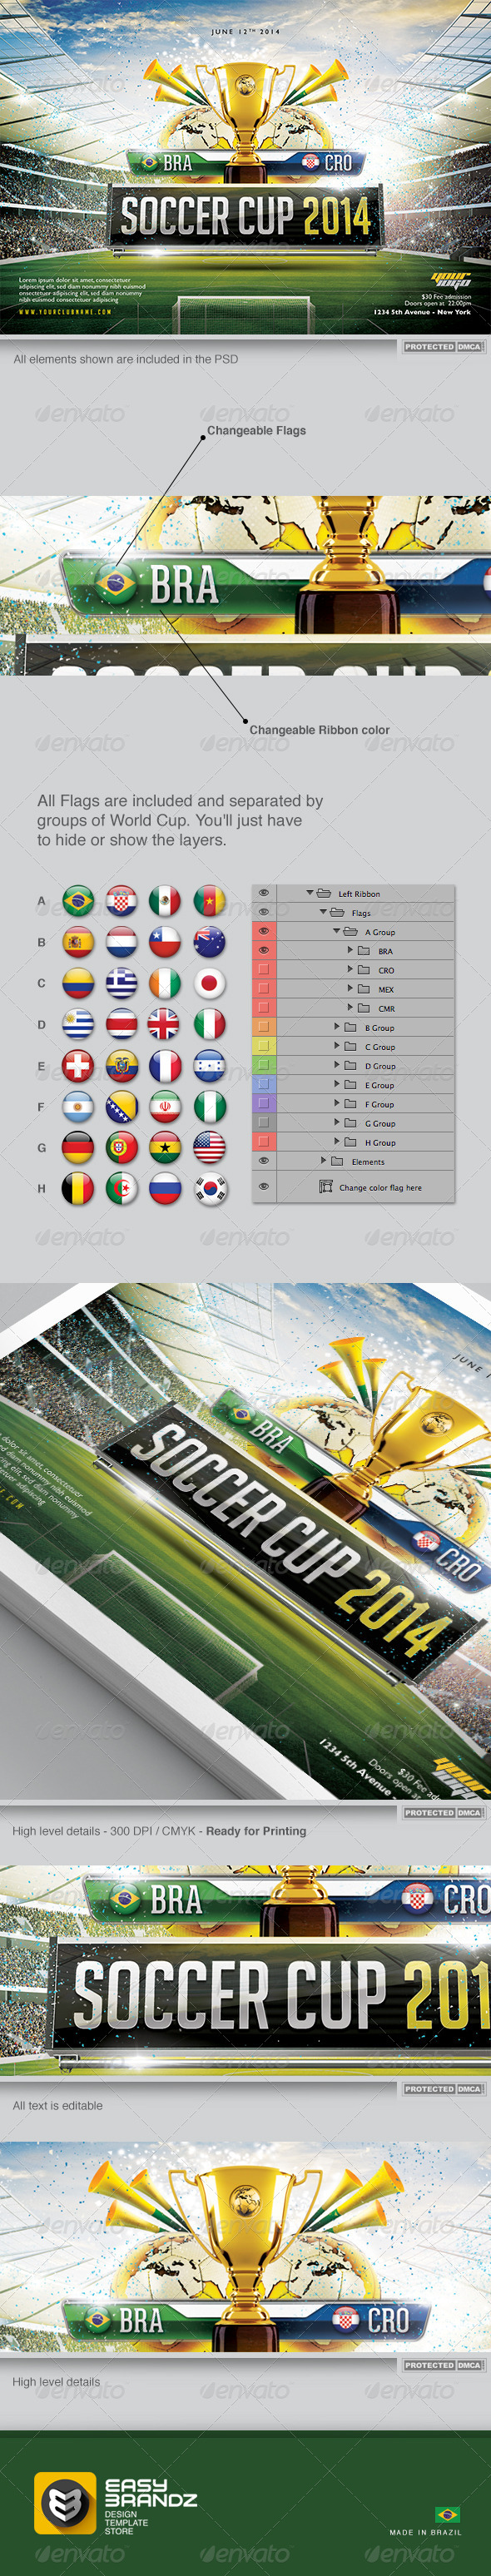 Soccer Cup 2014 Flyer Template - Sports Events